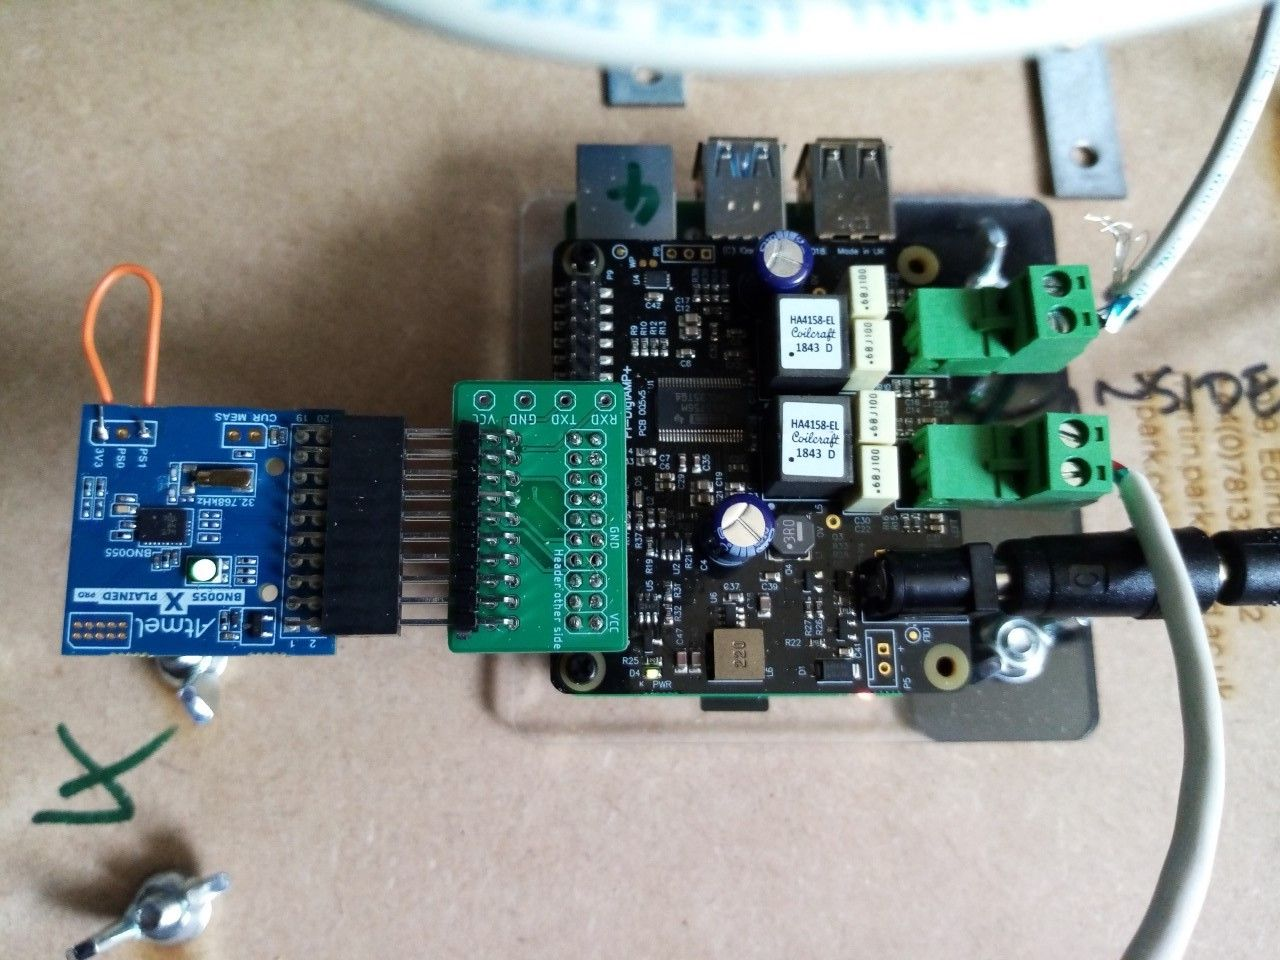 Bosch BNO055 9DOF sensor attached to Raspberry Pi and IQaudio amplifier, image by Martin Parker